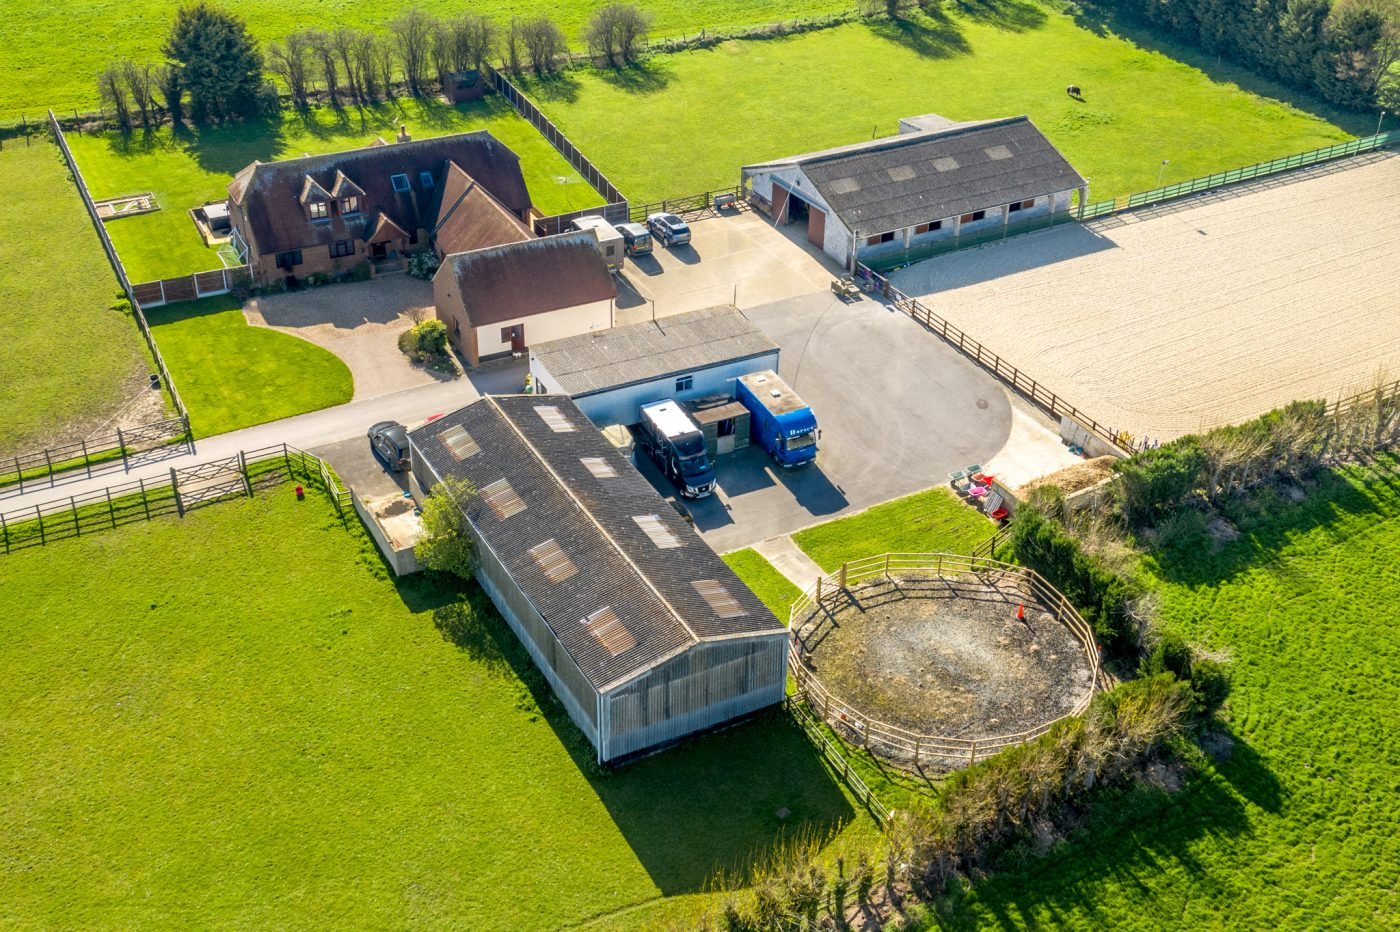 10 Indoor Stables An Outdoor Arena 14 Acres And A Rural Village Location For Less Than You D Expect Horse Hound